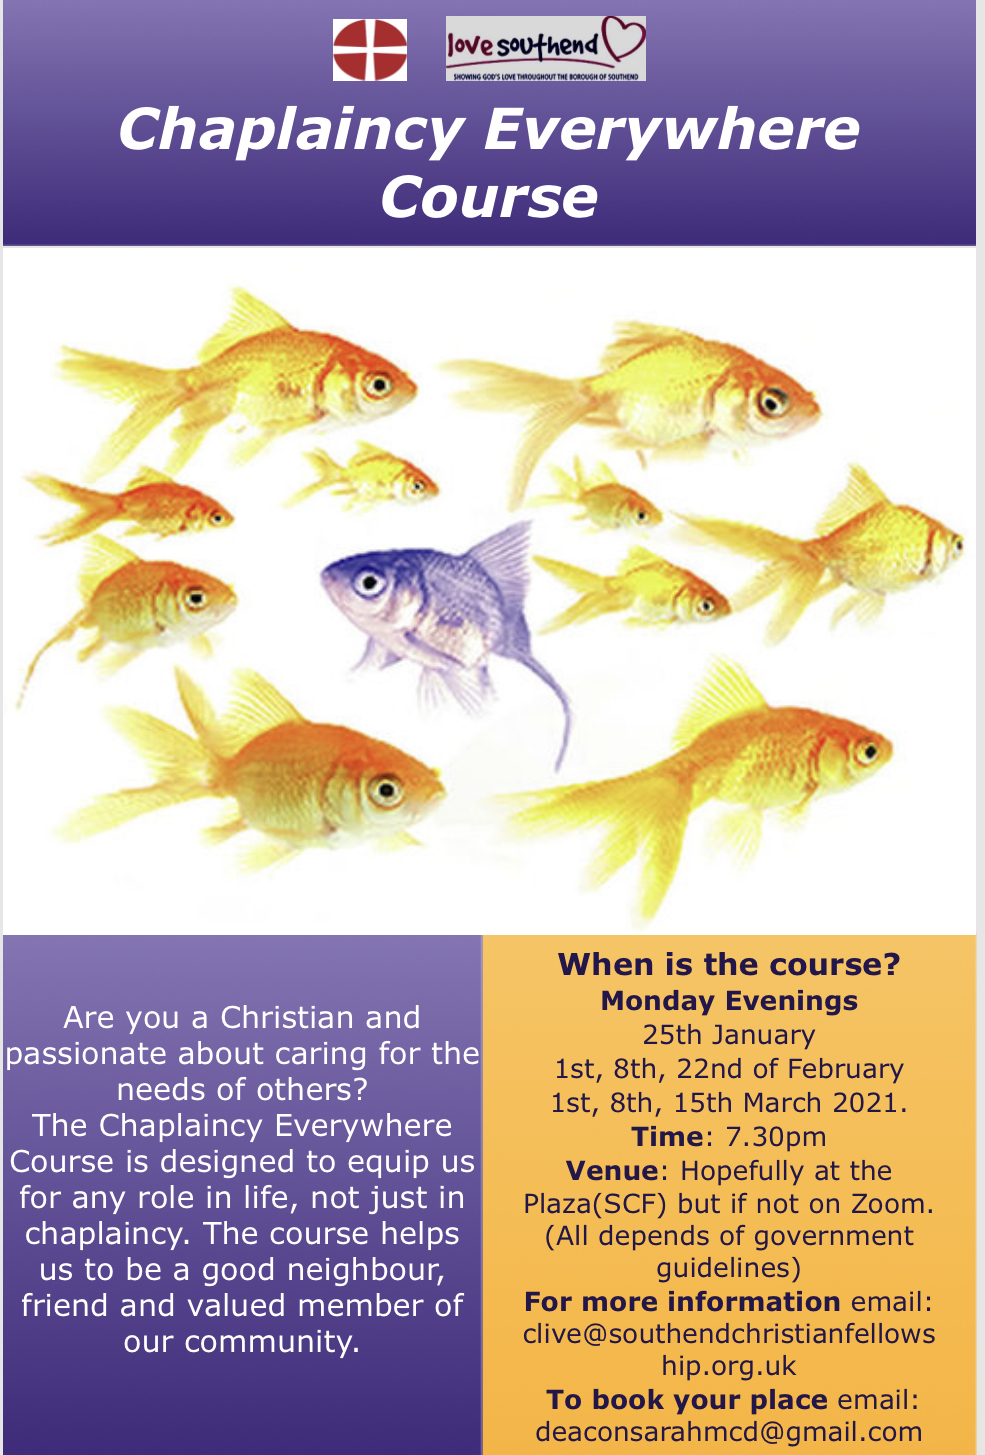 Are you interested in the Chaplaincy Everywhere Course?